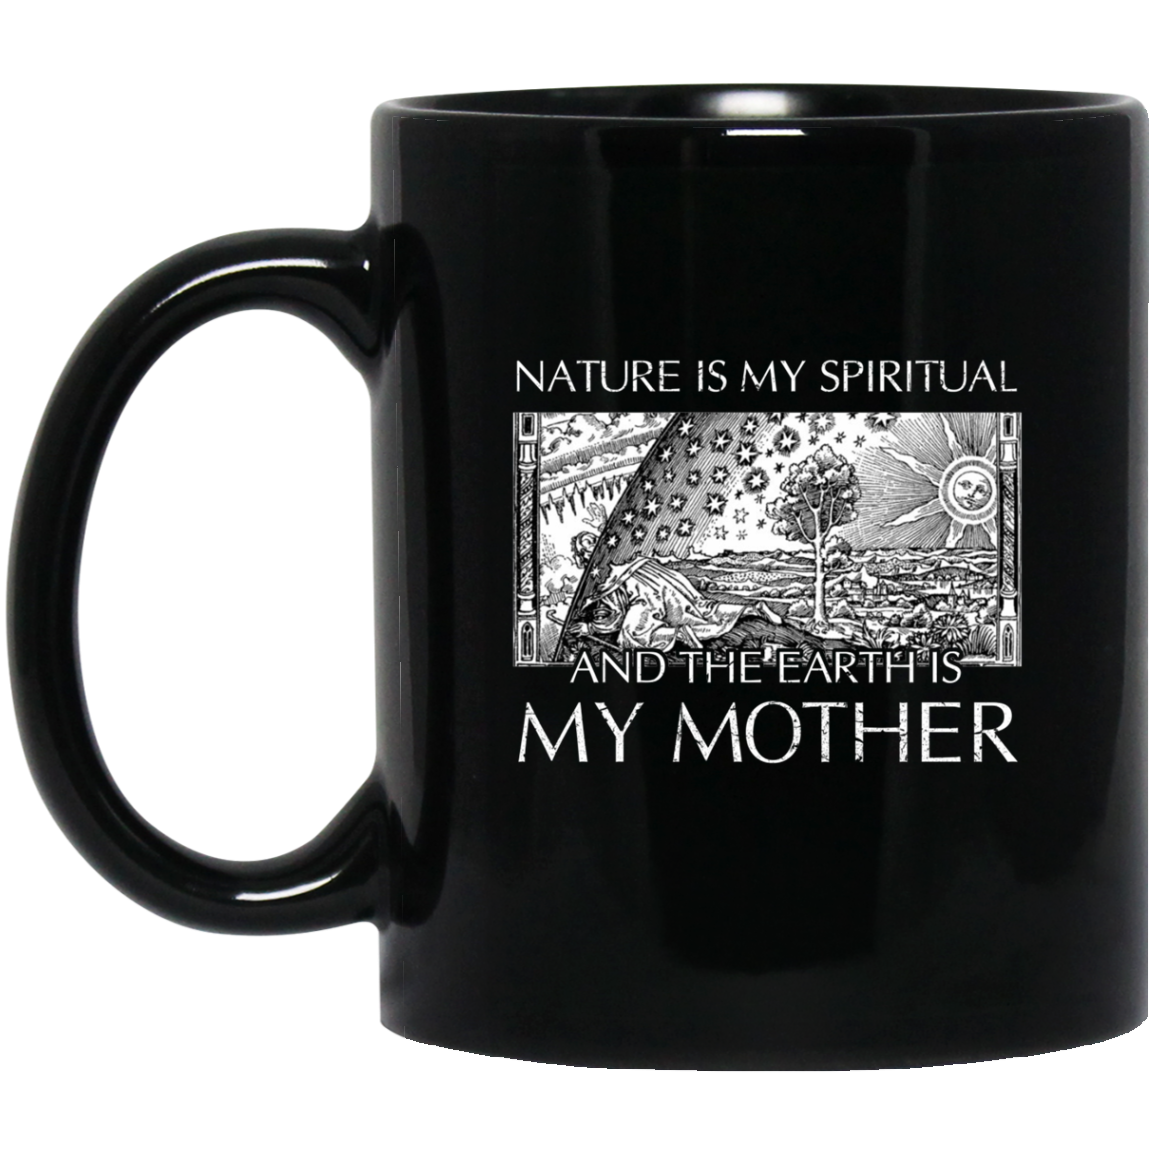 Earth Mugs The Earth Is My Mother Mug